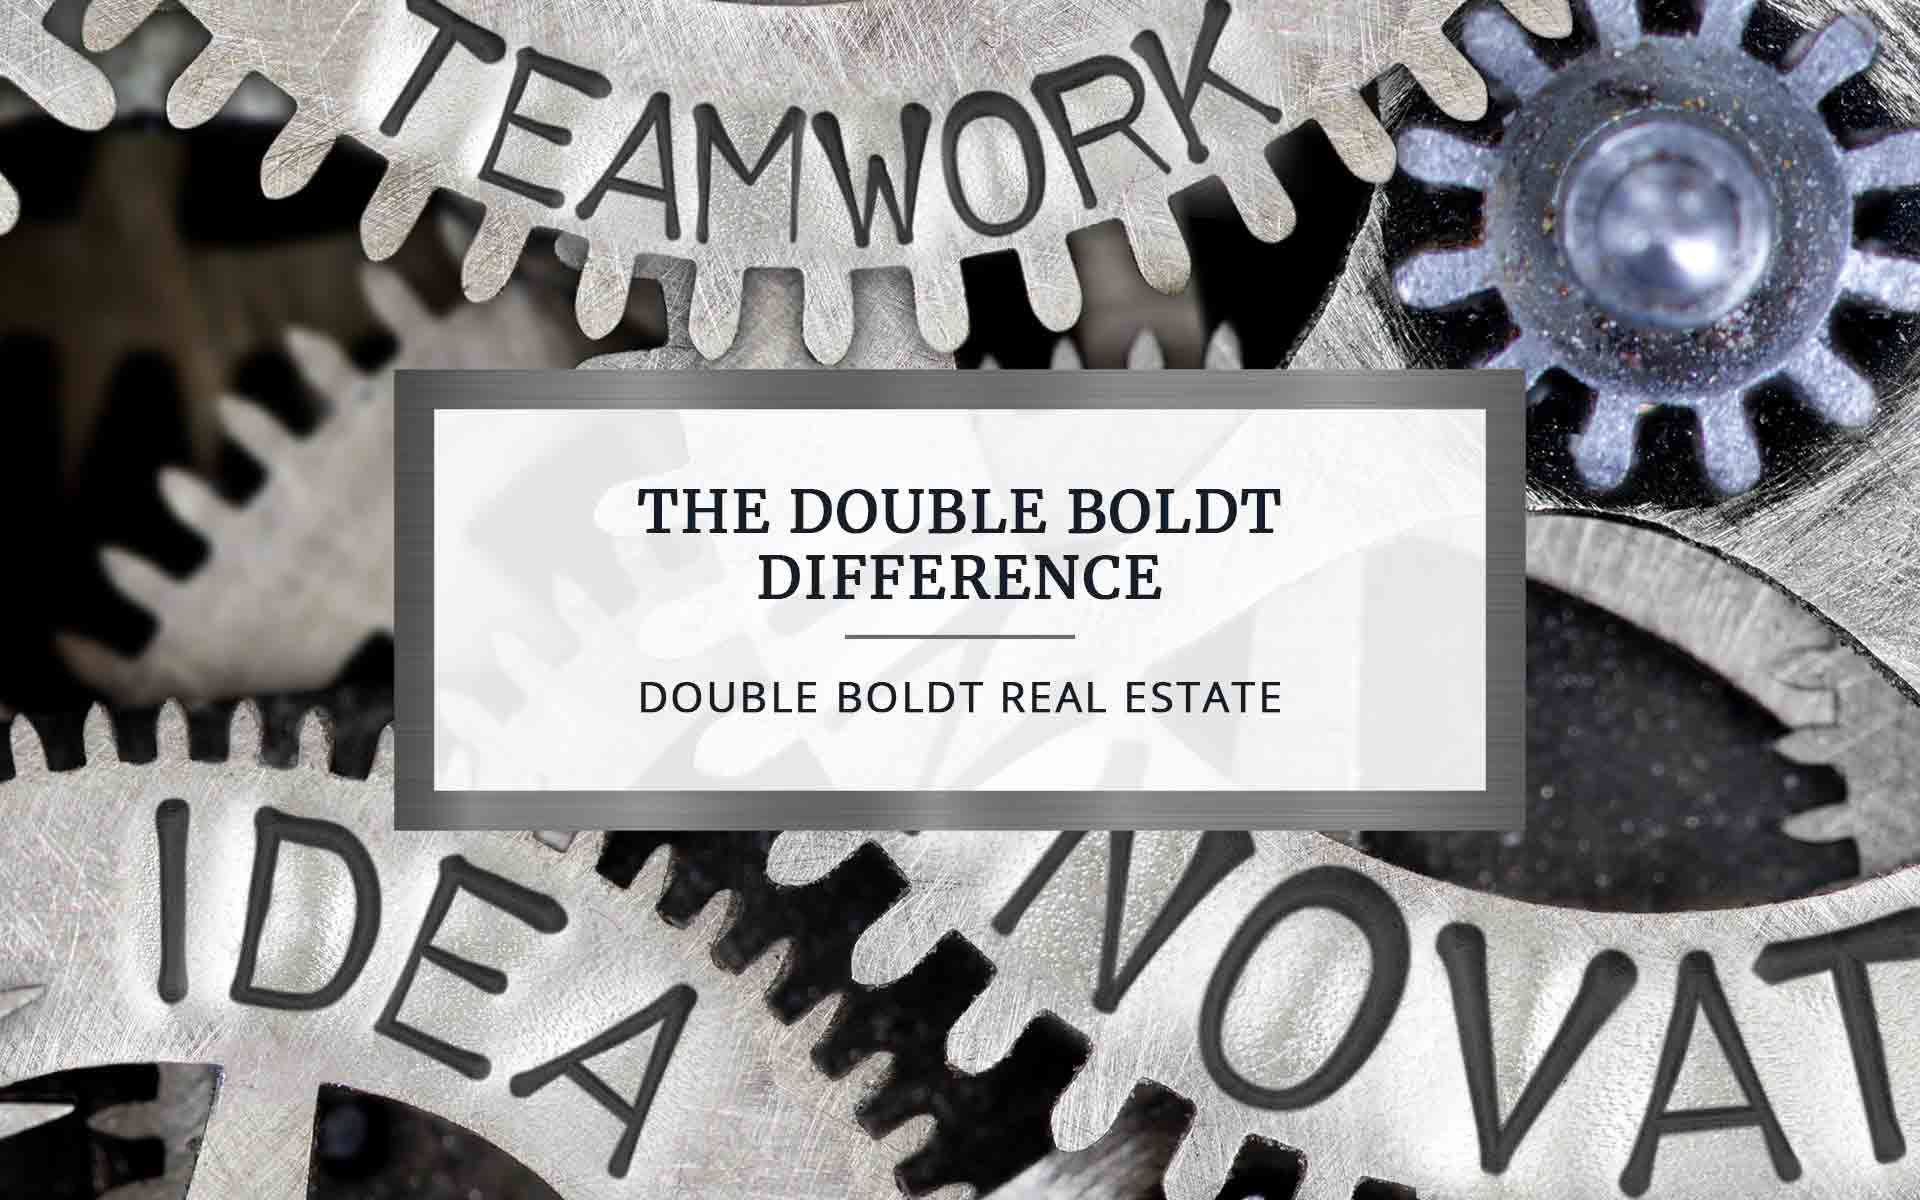 The Double Boldt Difference | Double Boldt Real Estate